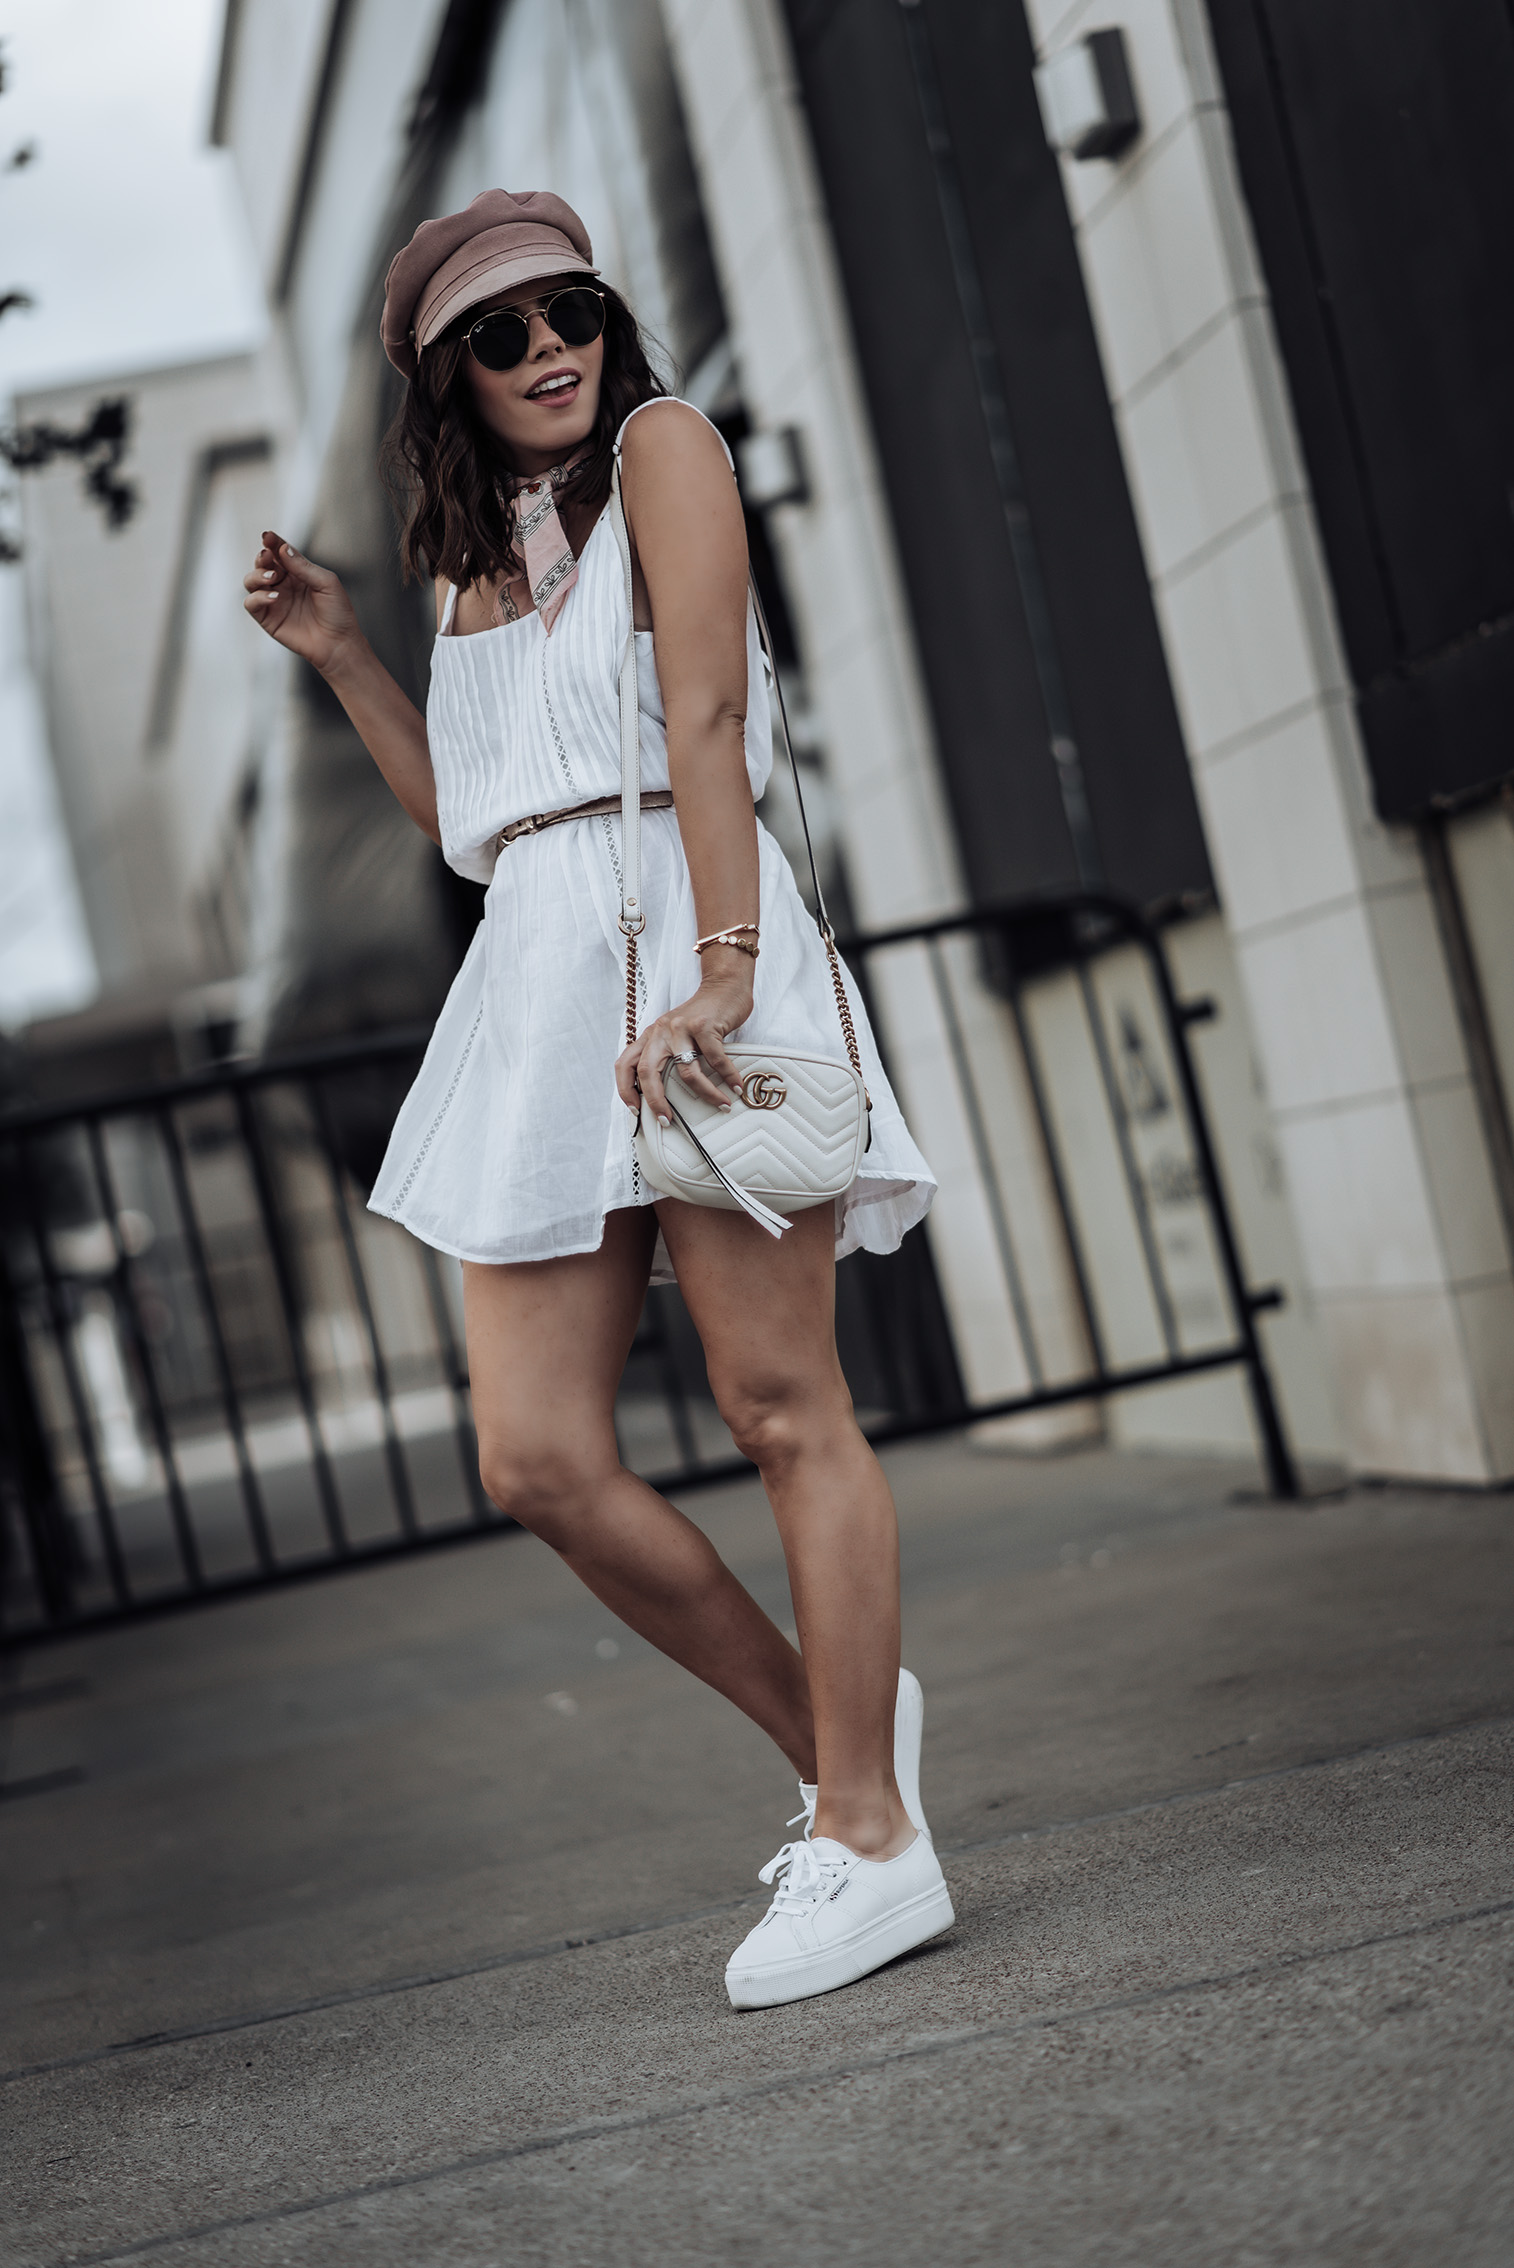 Little white dress | Pink Lola Cap (obsessed) | White Mini Summer Dress | Superga Platforms | Necktie (similar) | Gucci Bag #streetstyle #littlewhitedress #lackofcolor #gucci #liketkit